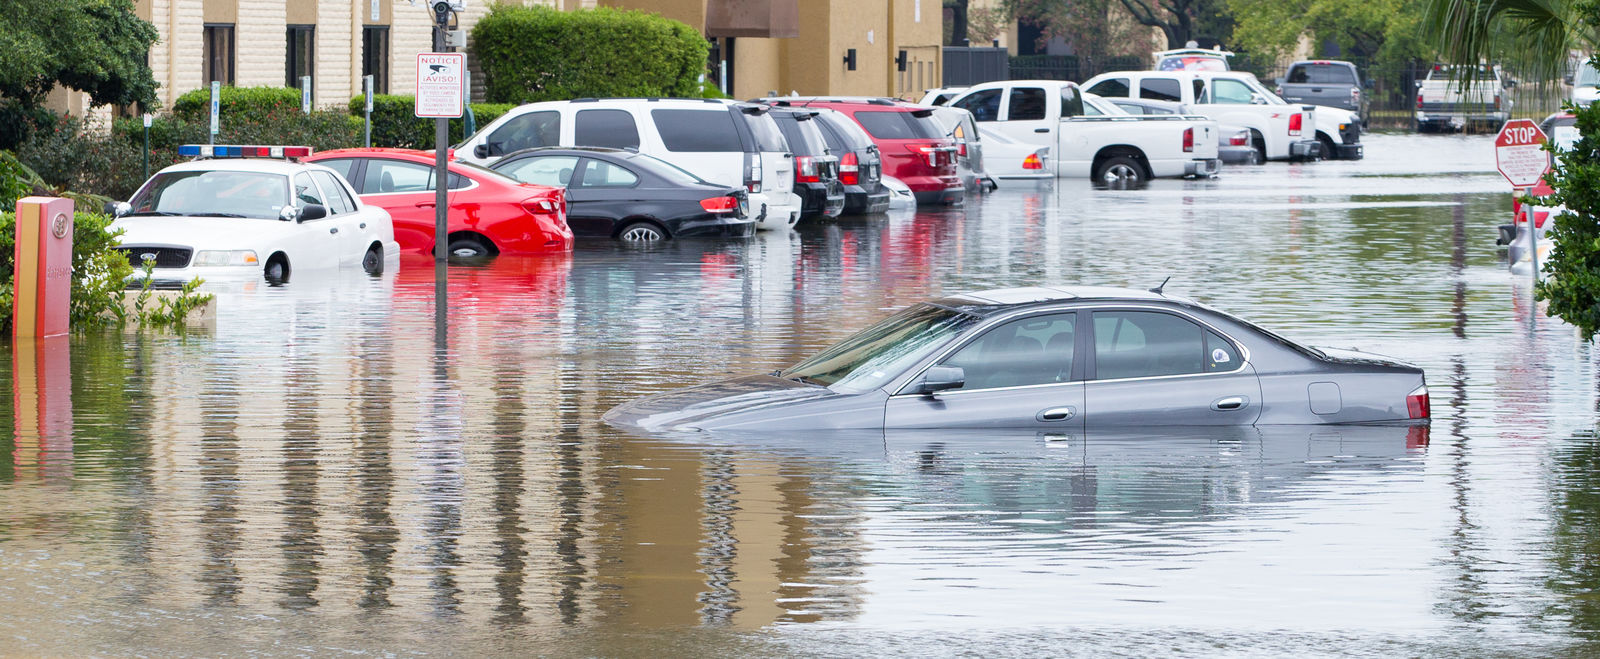 A parking lot in a city floods in a storm.